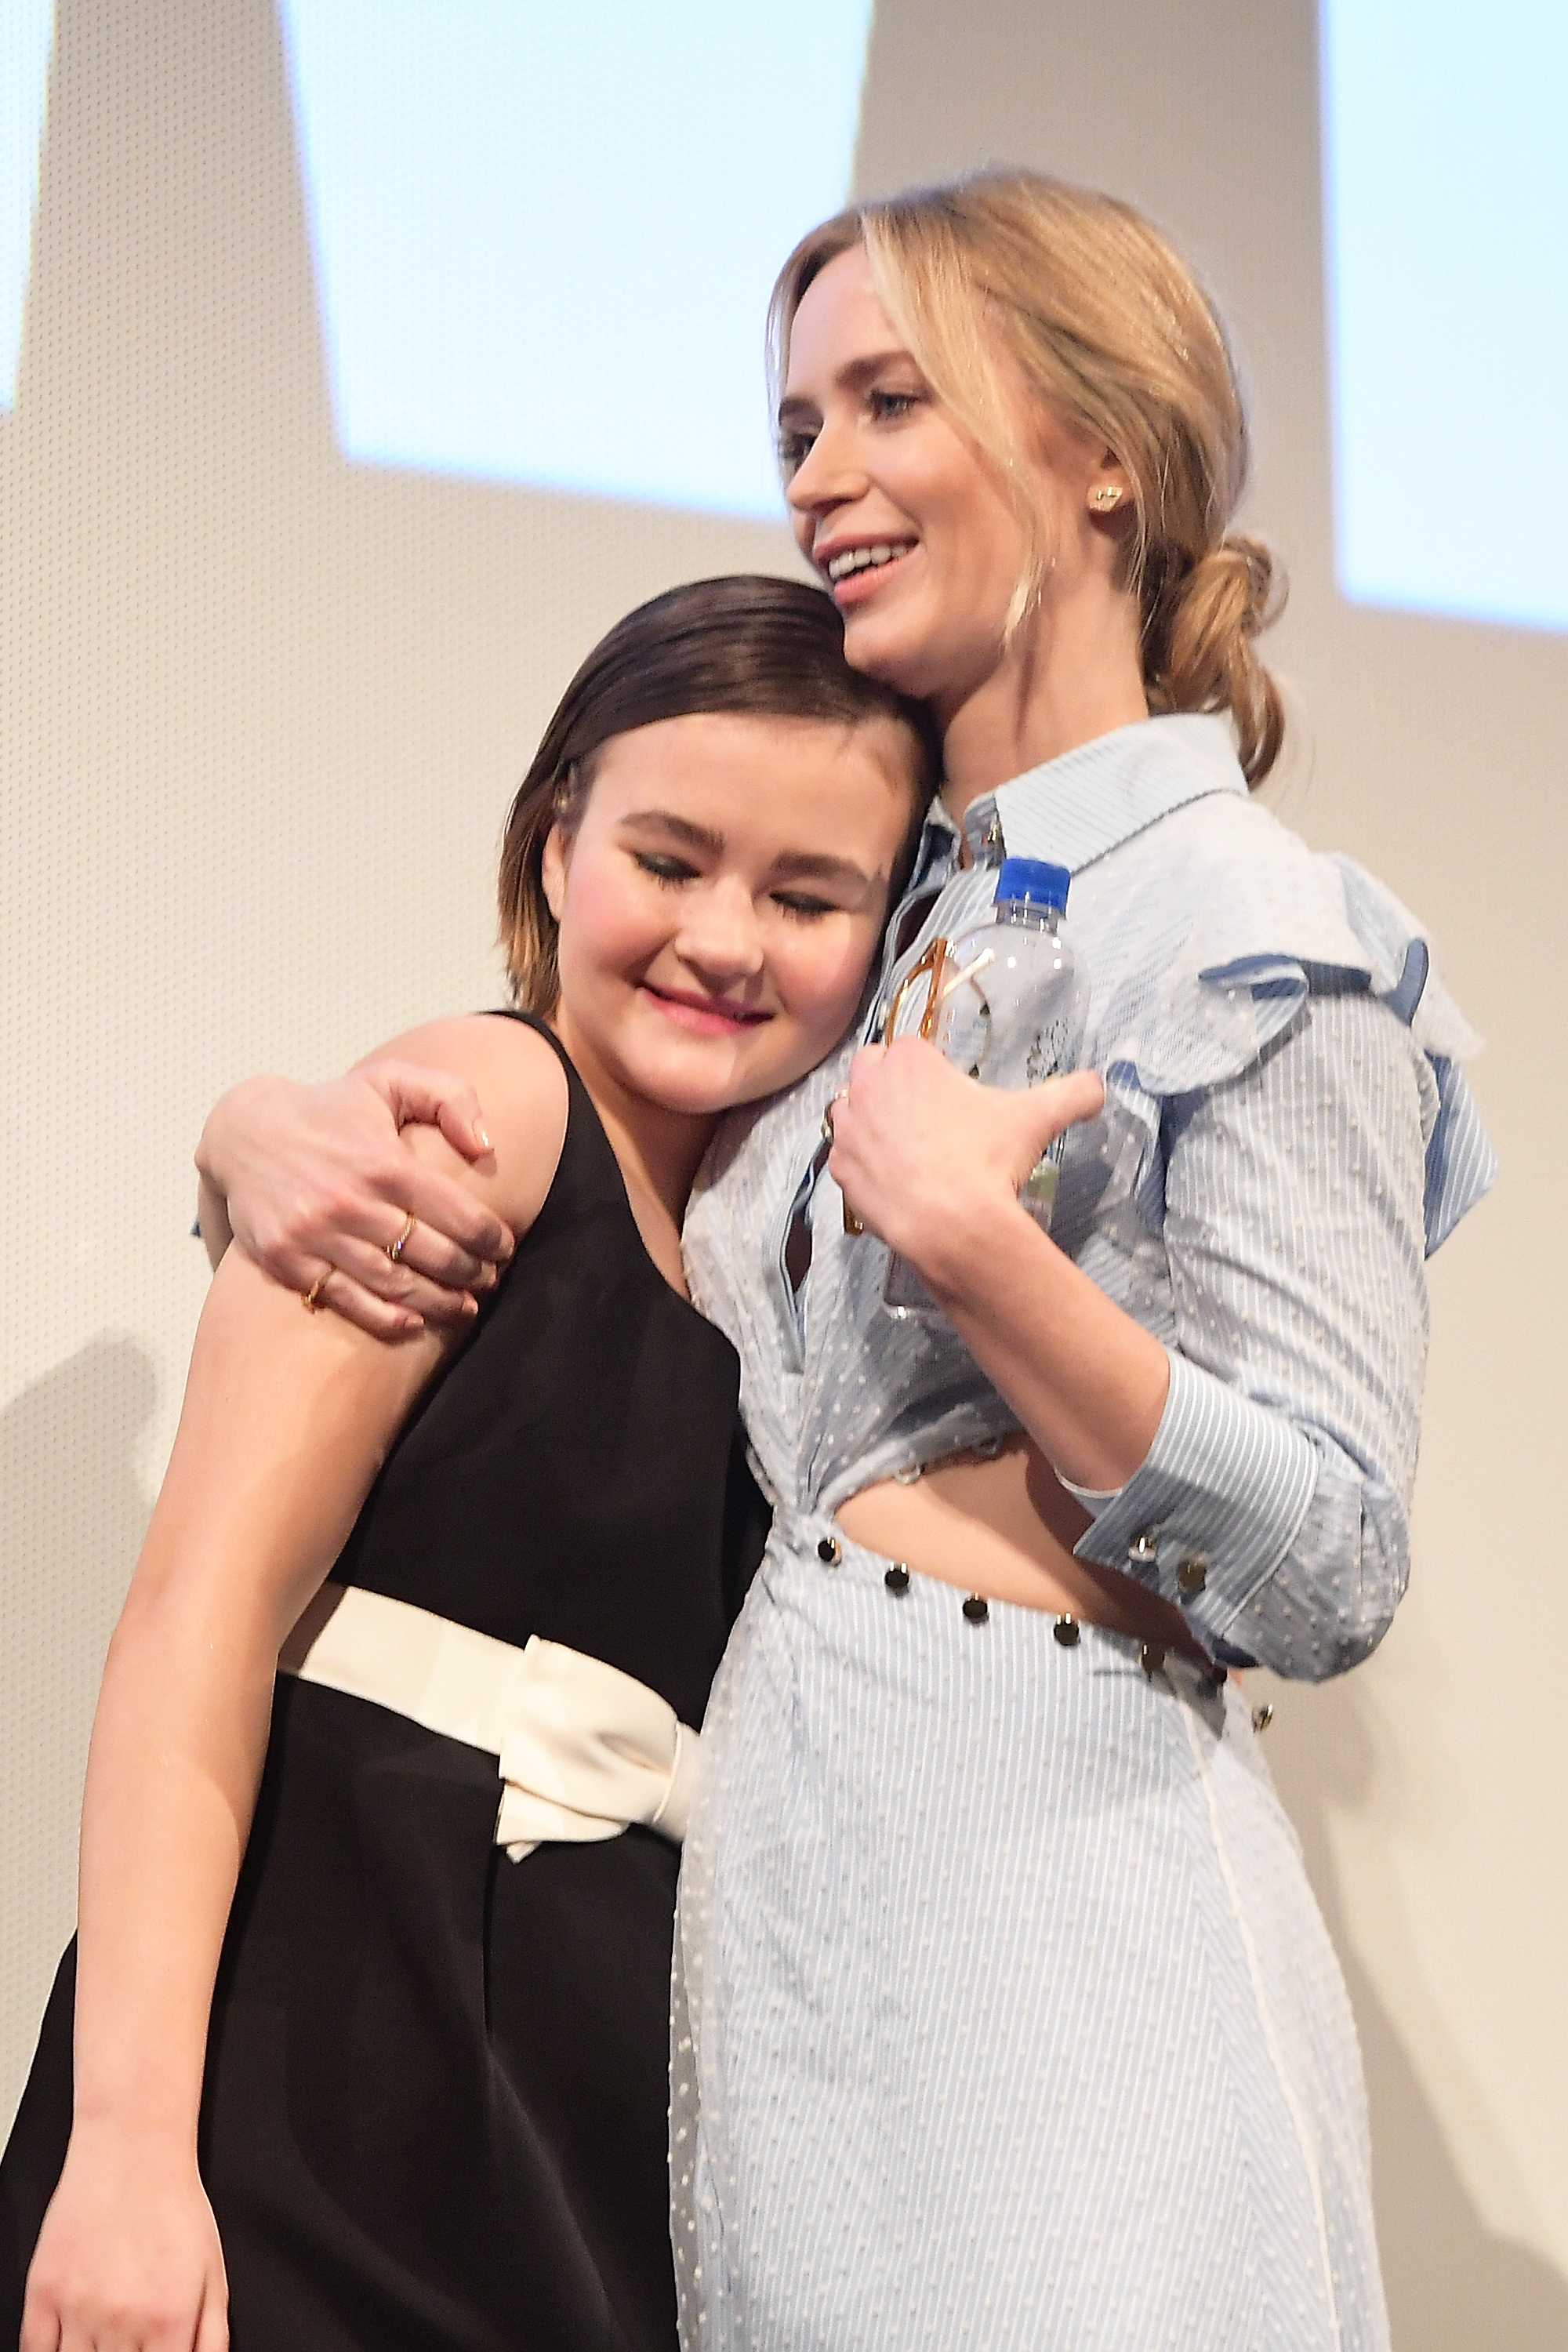 Emily Blunt and Millicent Simmonds during the Q&A for A Quiet Place.